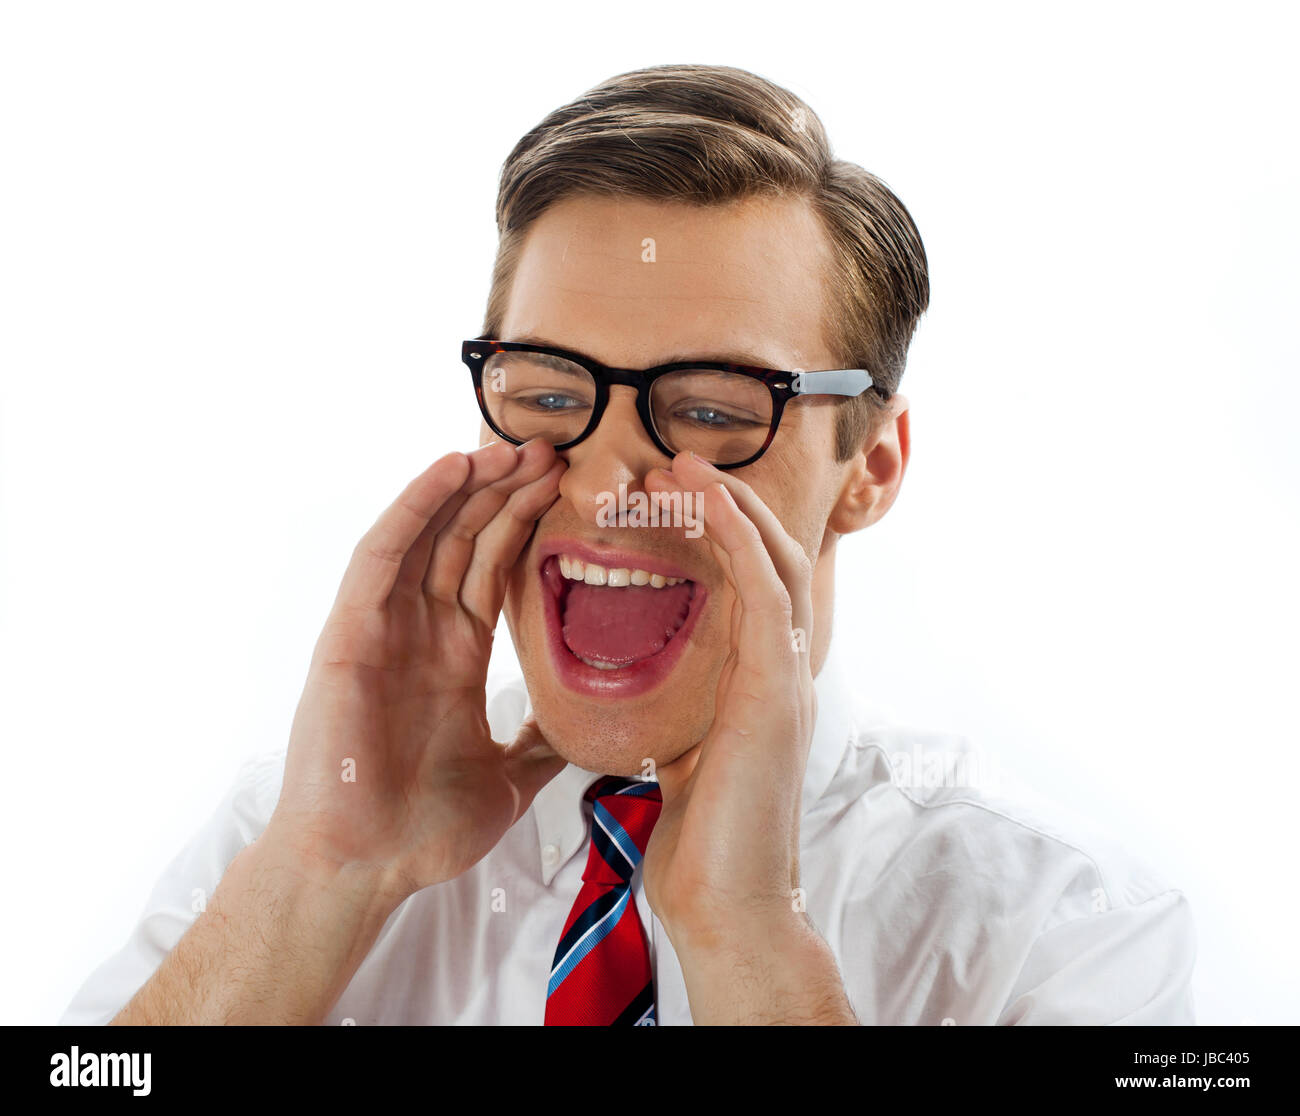 Excited businessman with glasses shouting loudly - Stock Image